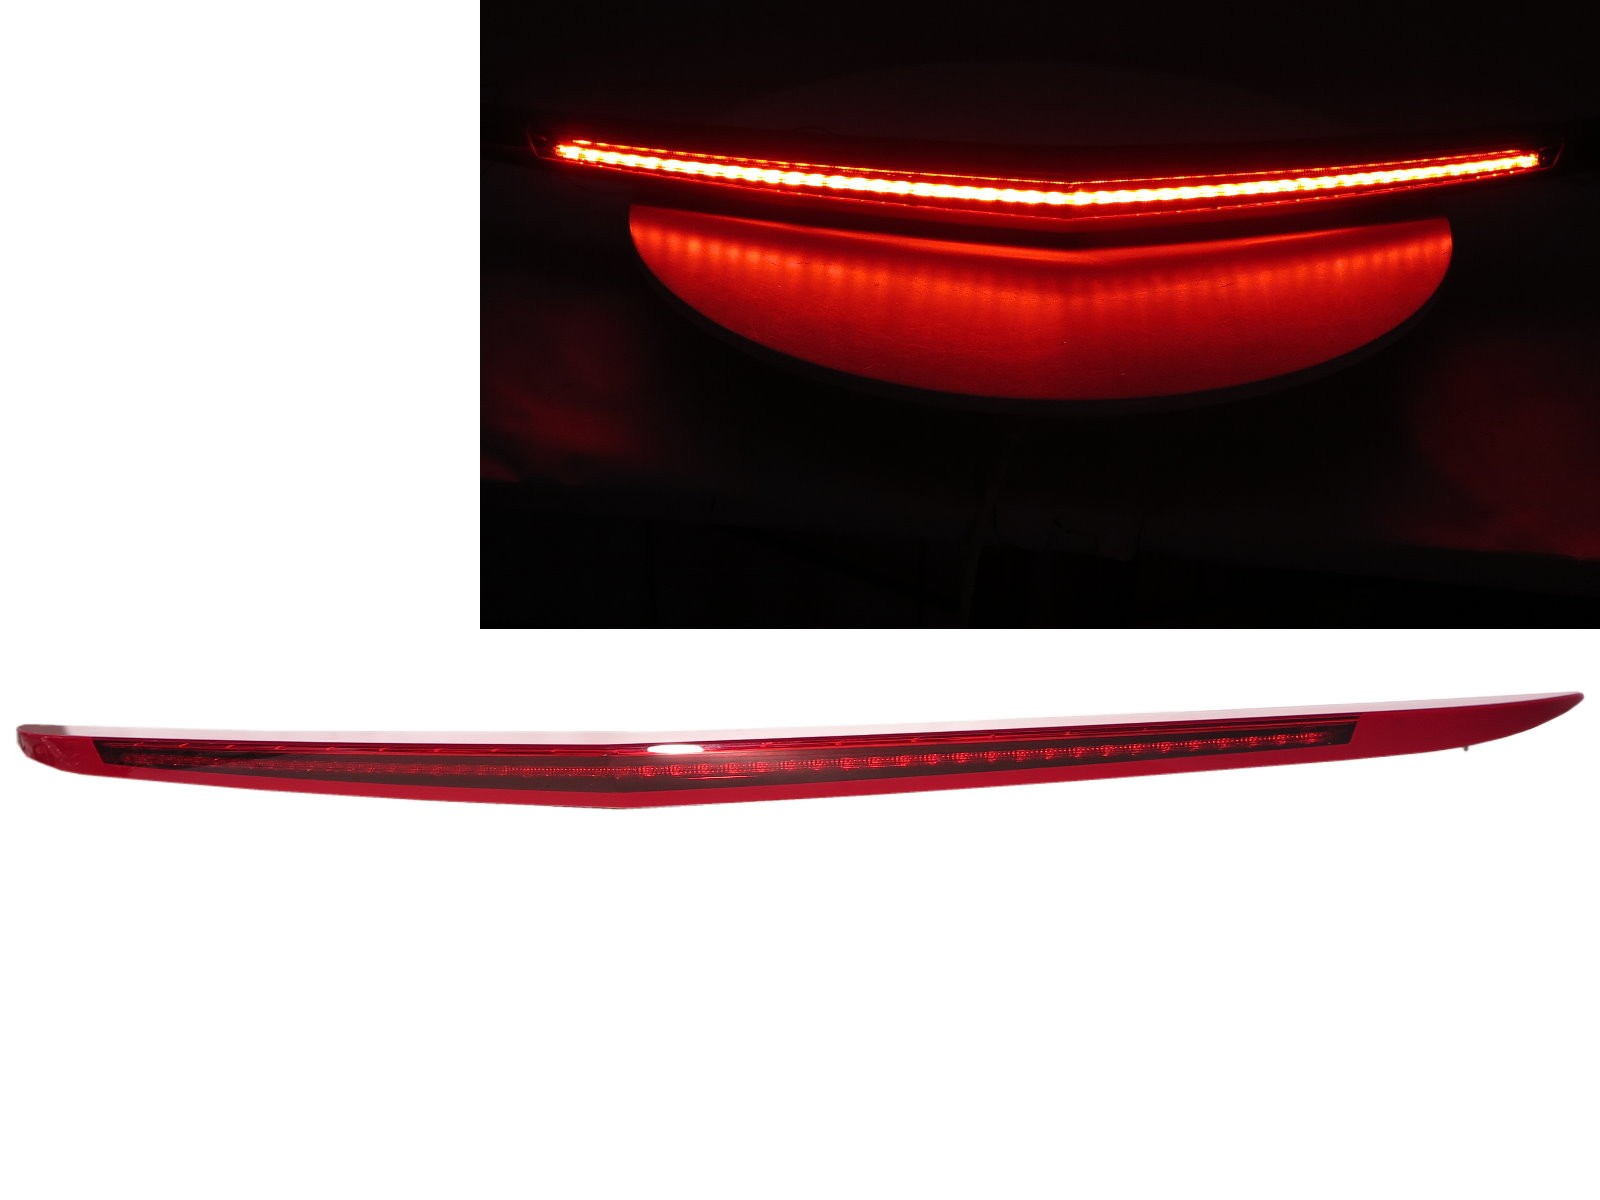 CrazyTheGod XTS 2013-2017 Pre-Facelift Sedan 4D LED Rear Tail Third Brake Light Red for CADILLAC